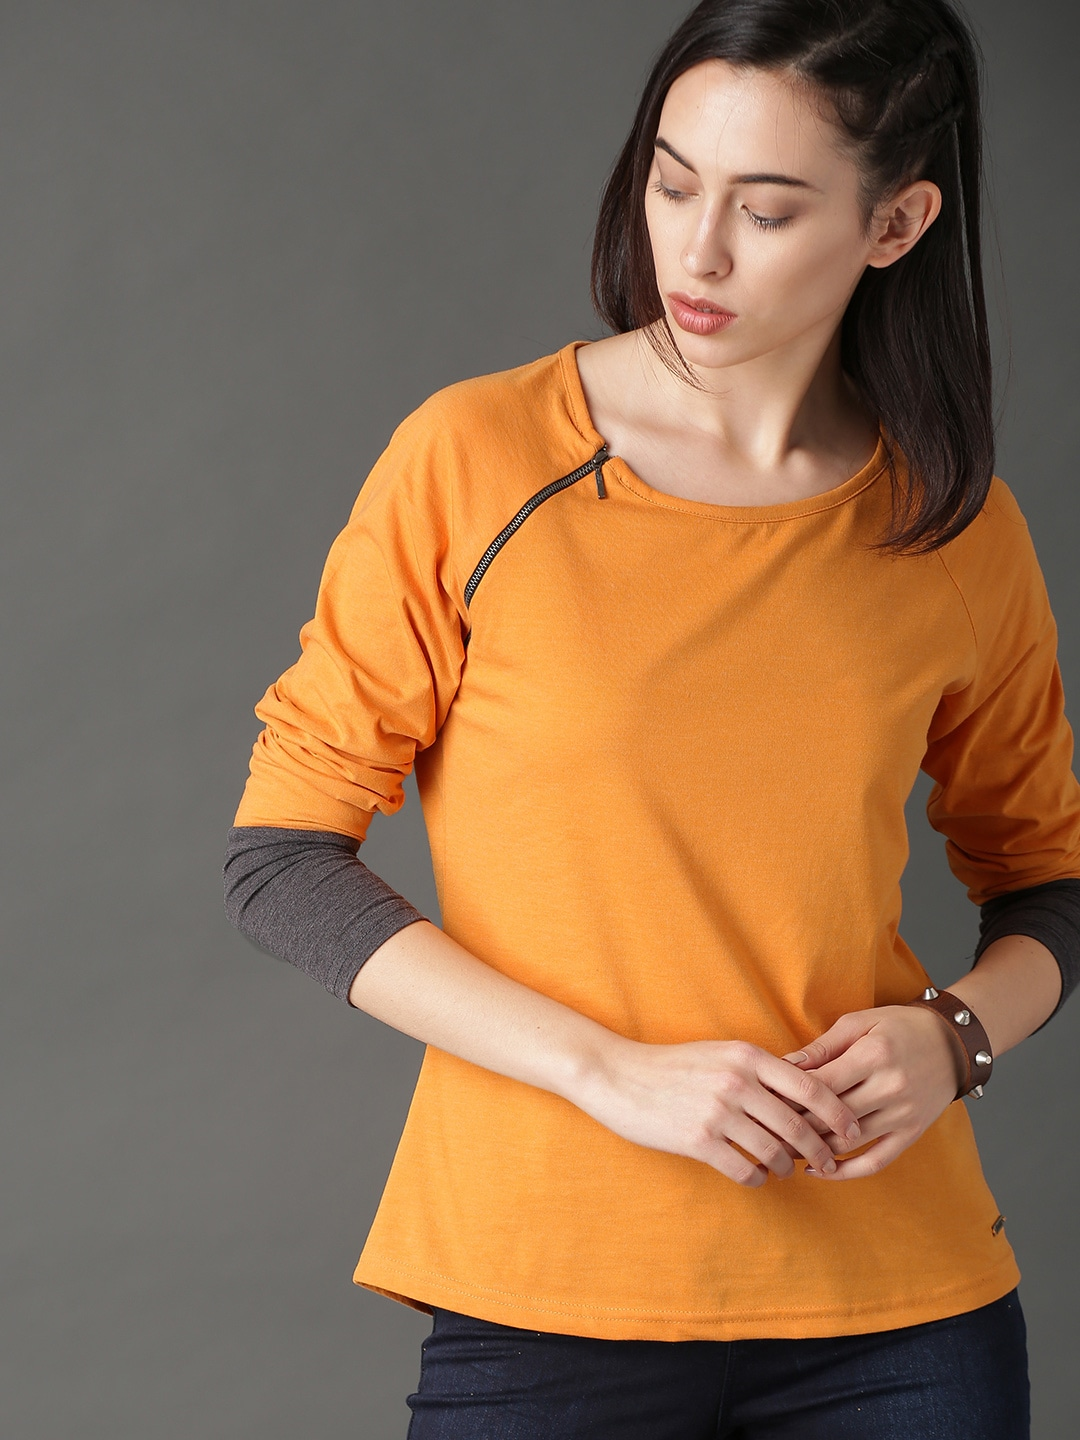 9342e6951df9 Polyester Tshirts - Buy Polyester Tshirts online in India